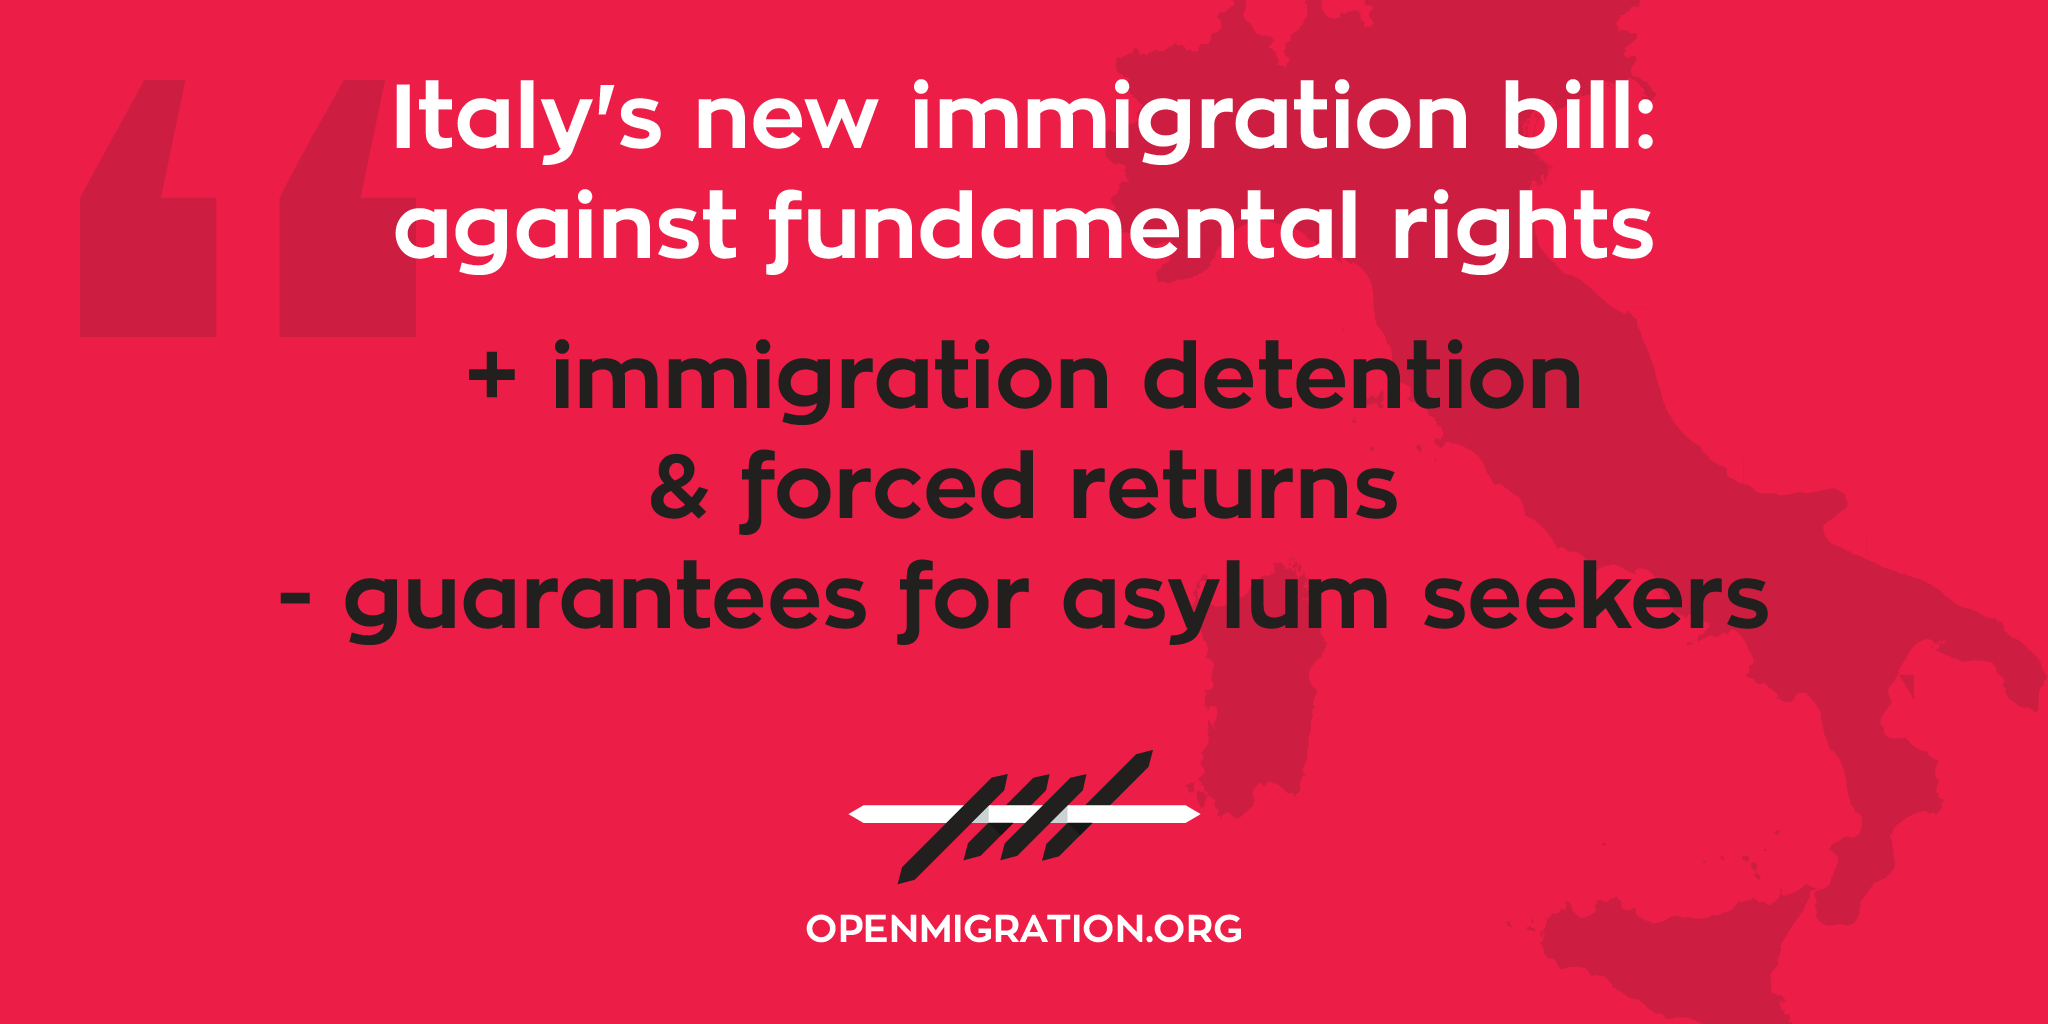 the new italian law on immigration is not good news ⁄ open migration